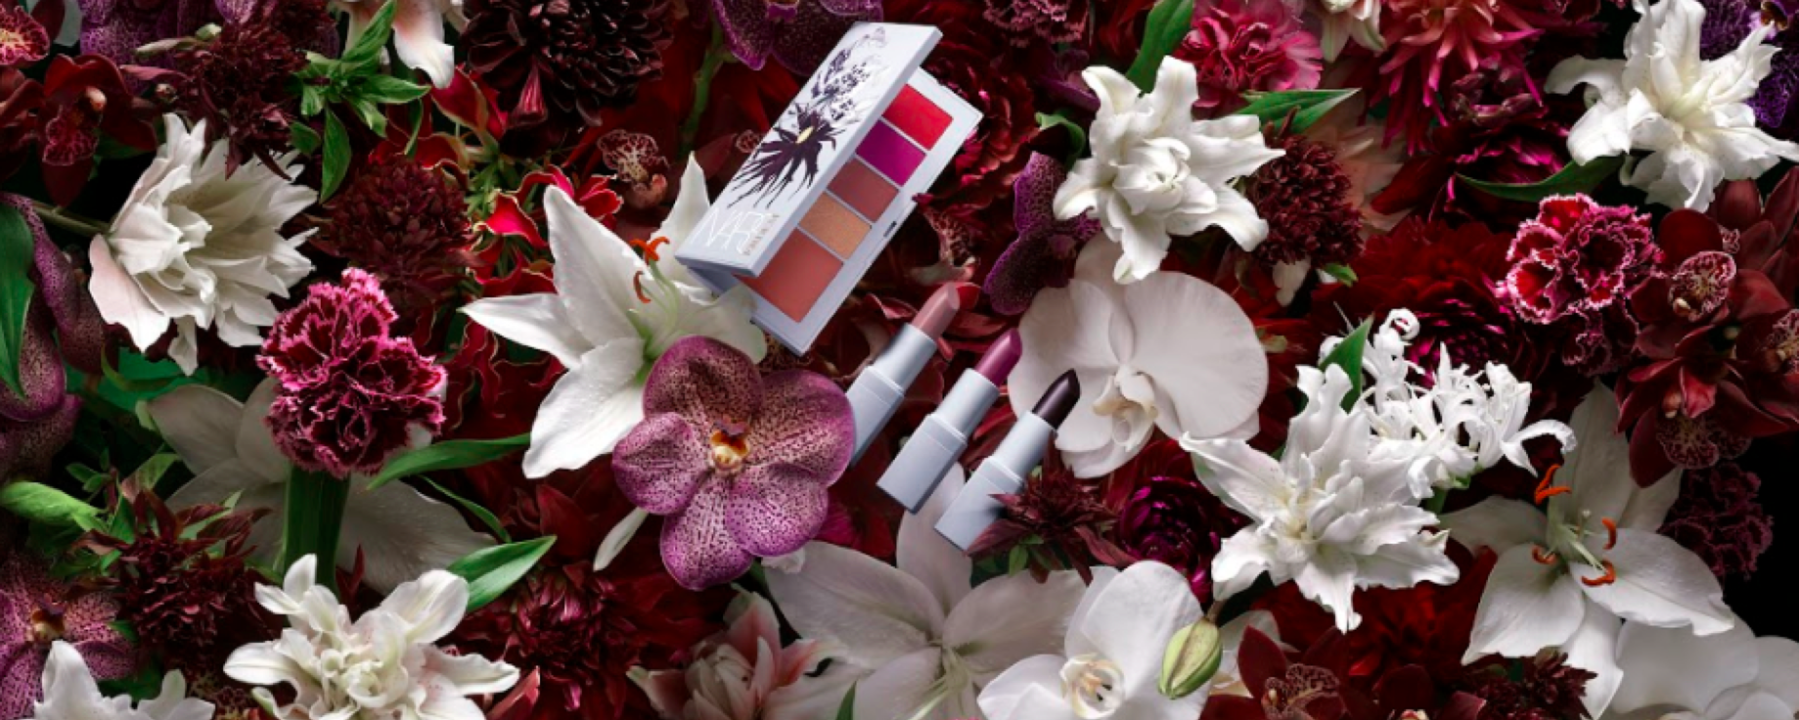 NEW! ERDEM FOR NARS STRANGE FLOWERS COLLECTION